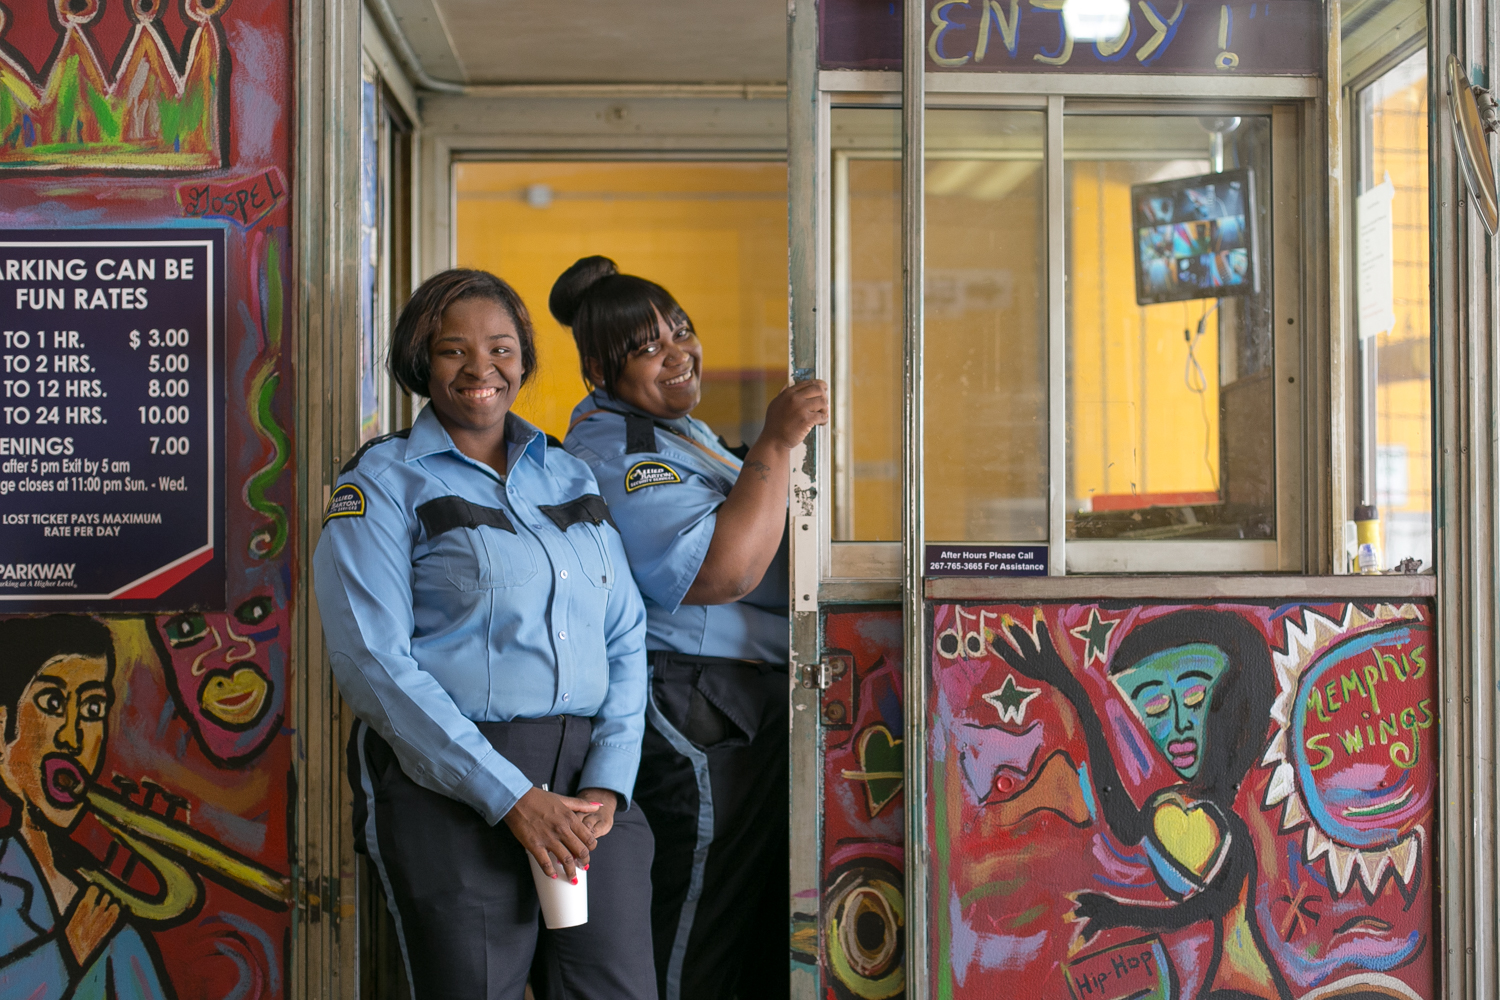 London and Lasherica are parking enforcers at Parking Can Be Fun garage in Downtown Memphis. Combined, they have a year and eight months of parking experience under their belts. Today is Lasherica's birthday. Join me in wishing her a Happy Birthday!